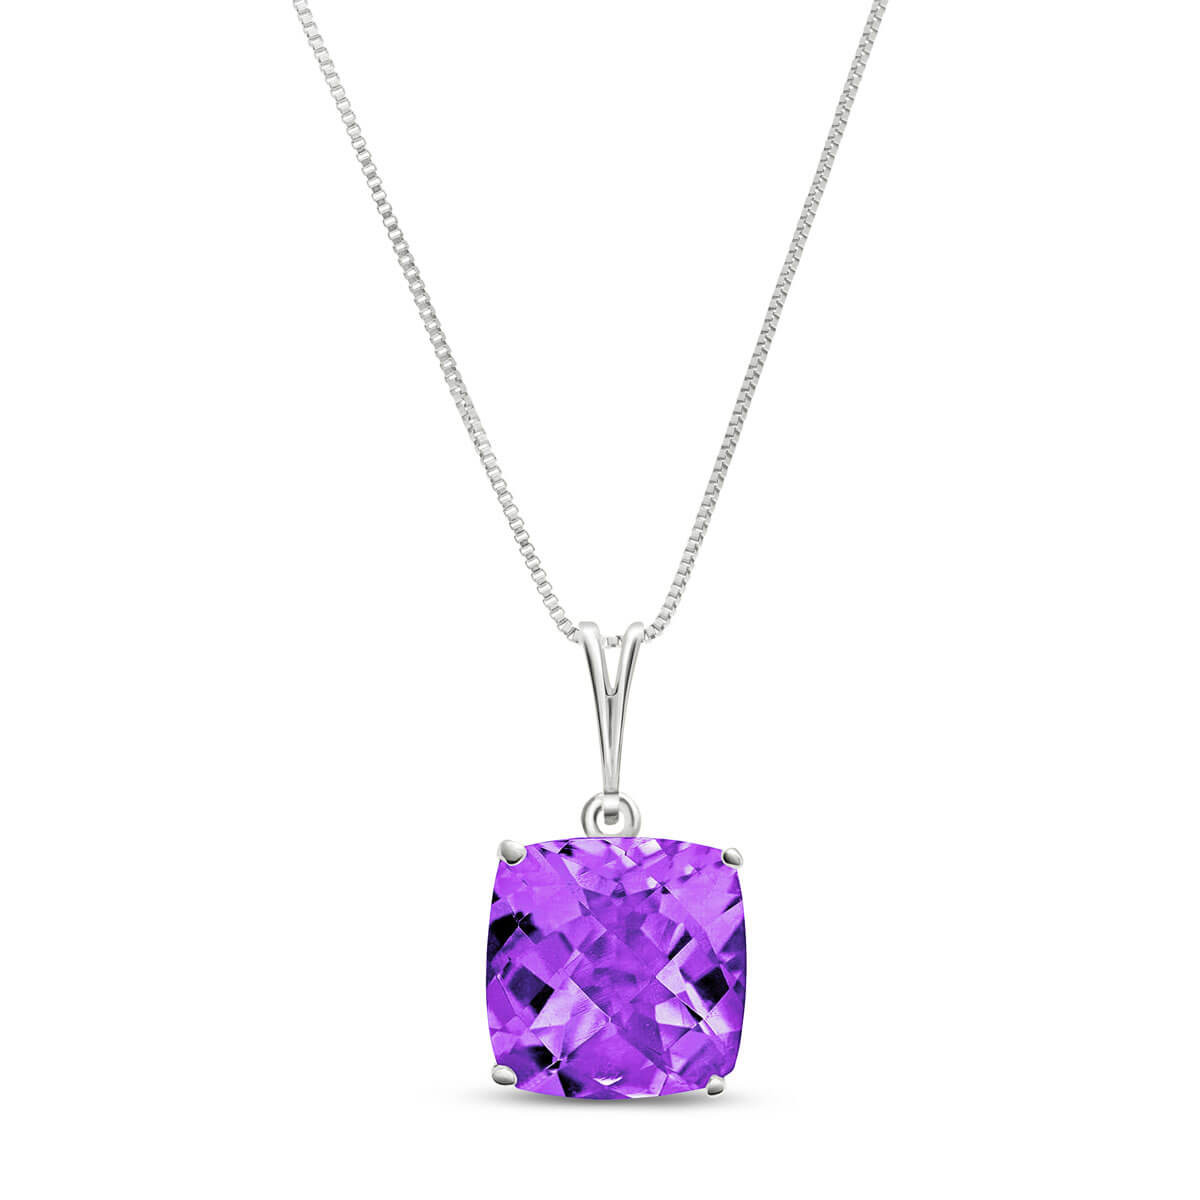 Amethyst Rococo Pendant Necklace 3.6 ct in 9ct White Gold